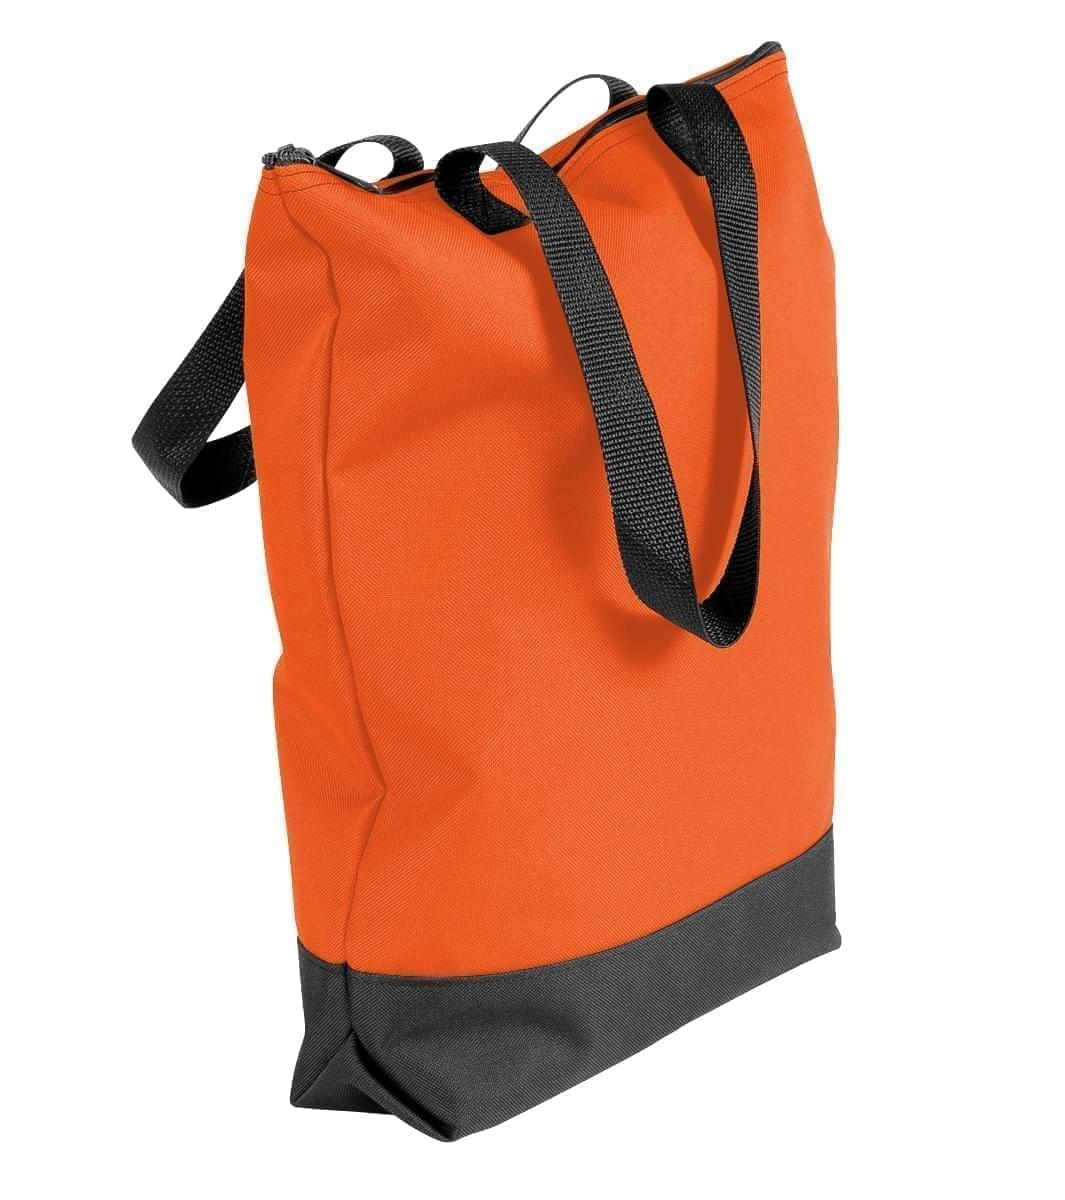 USA Made Poly Notebook Tote Bags, Orange-Black, 1AAMX1UAXR